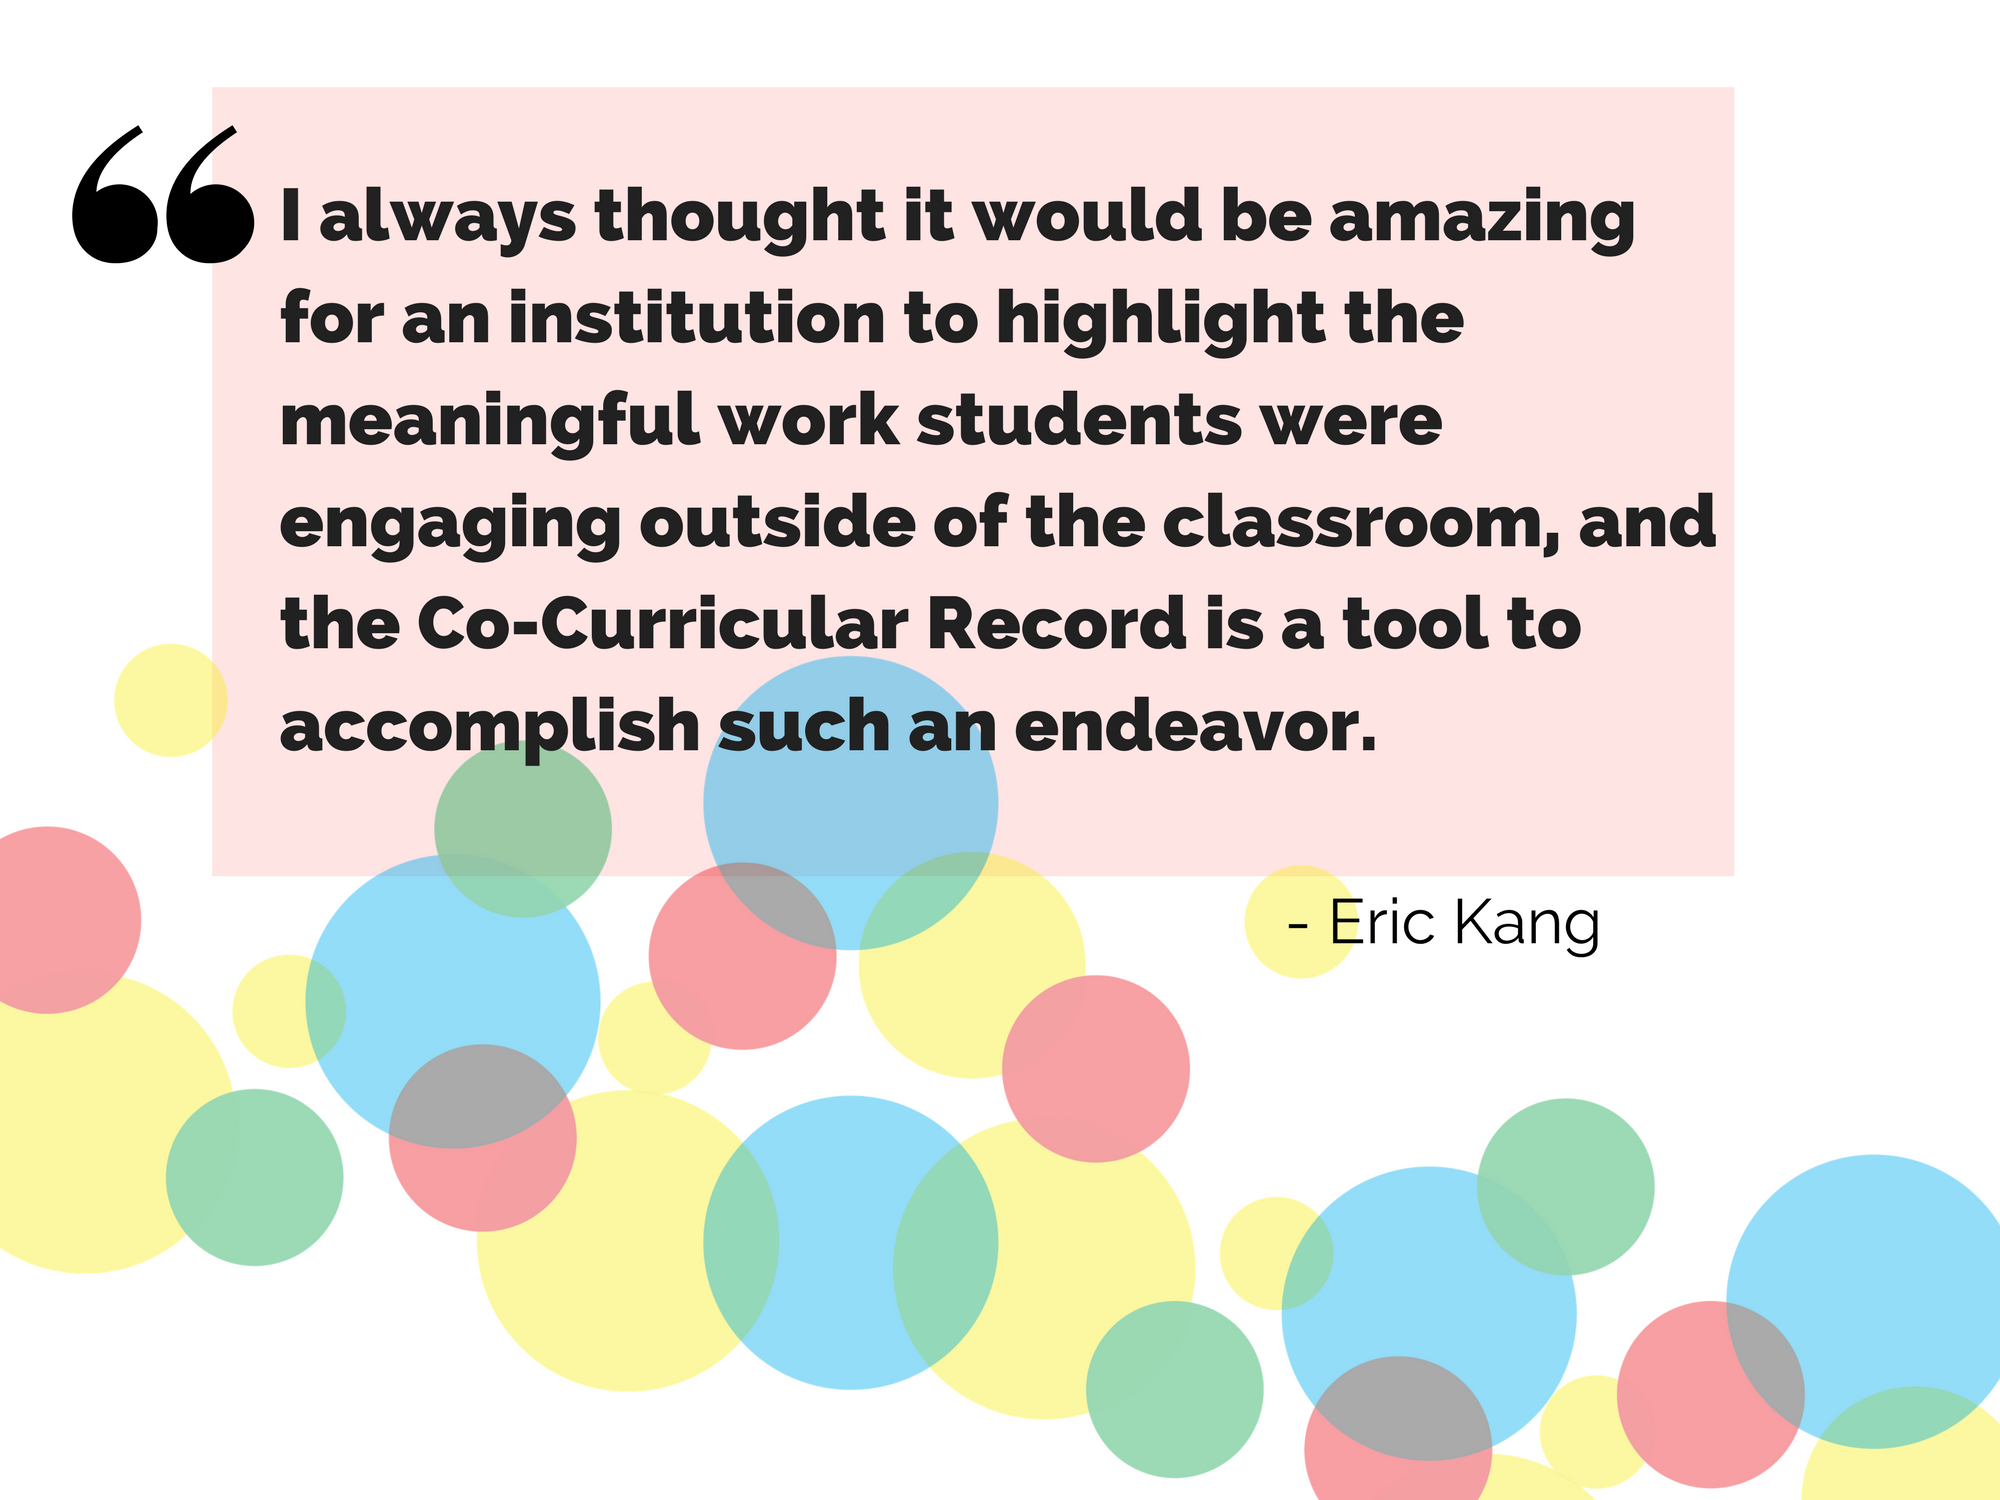 I always thought it would be amazing for an institution to highlight the meaningful work students were engaging outside of the classroom, and the Co-Curricular Record is a tool to accomplish such an endeavor.